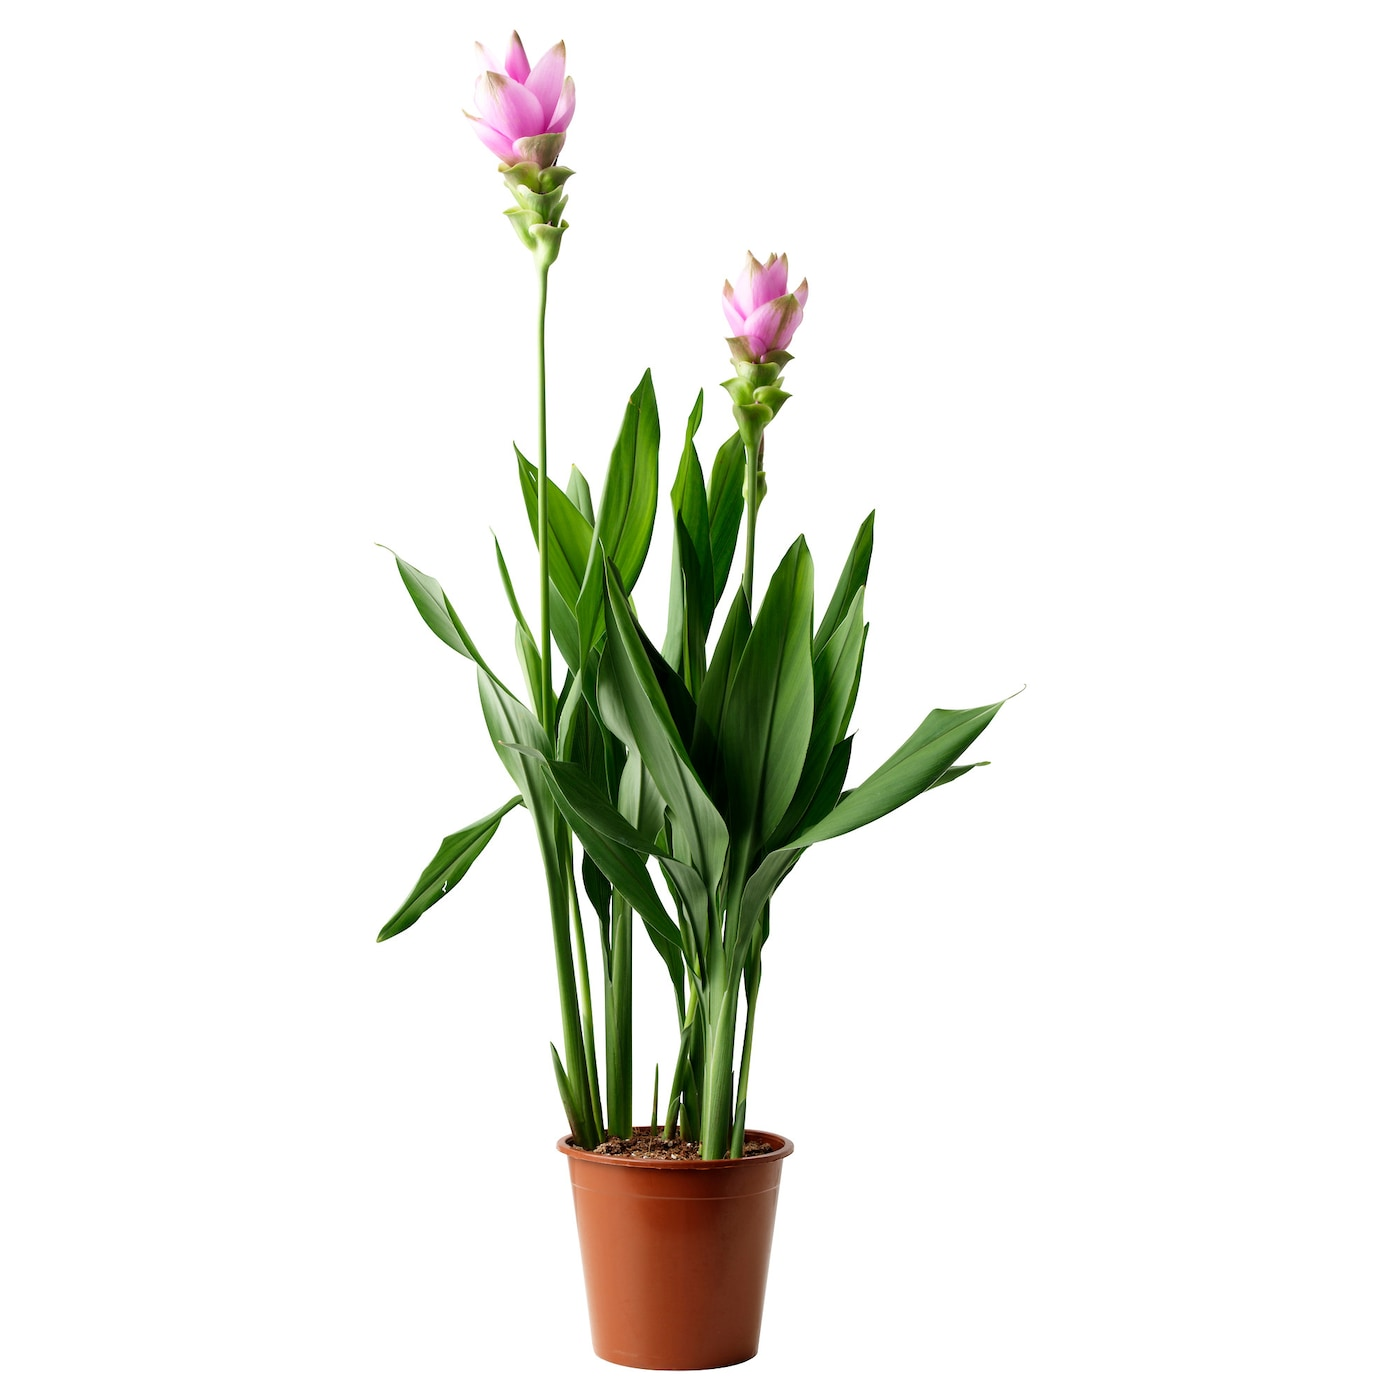 curcuma plante en pot curcuma rose 17 cm ikea. Black Bedroom Furniture Sets. Home Design Ideas